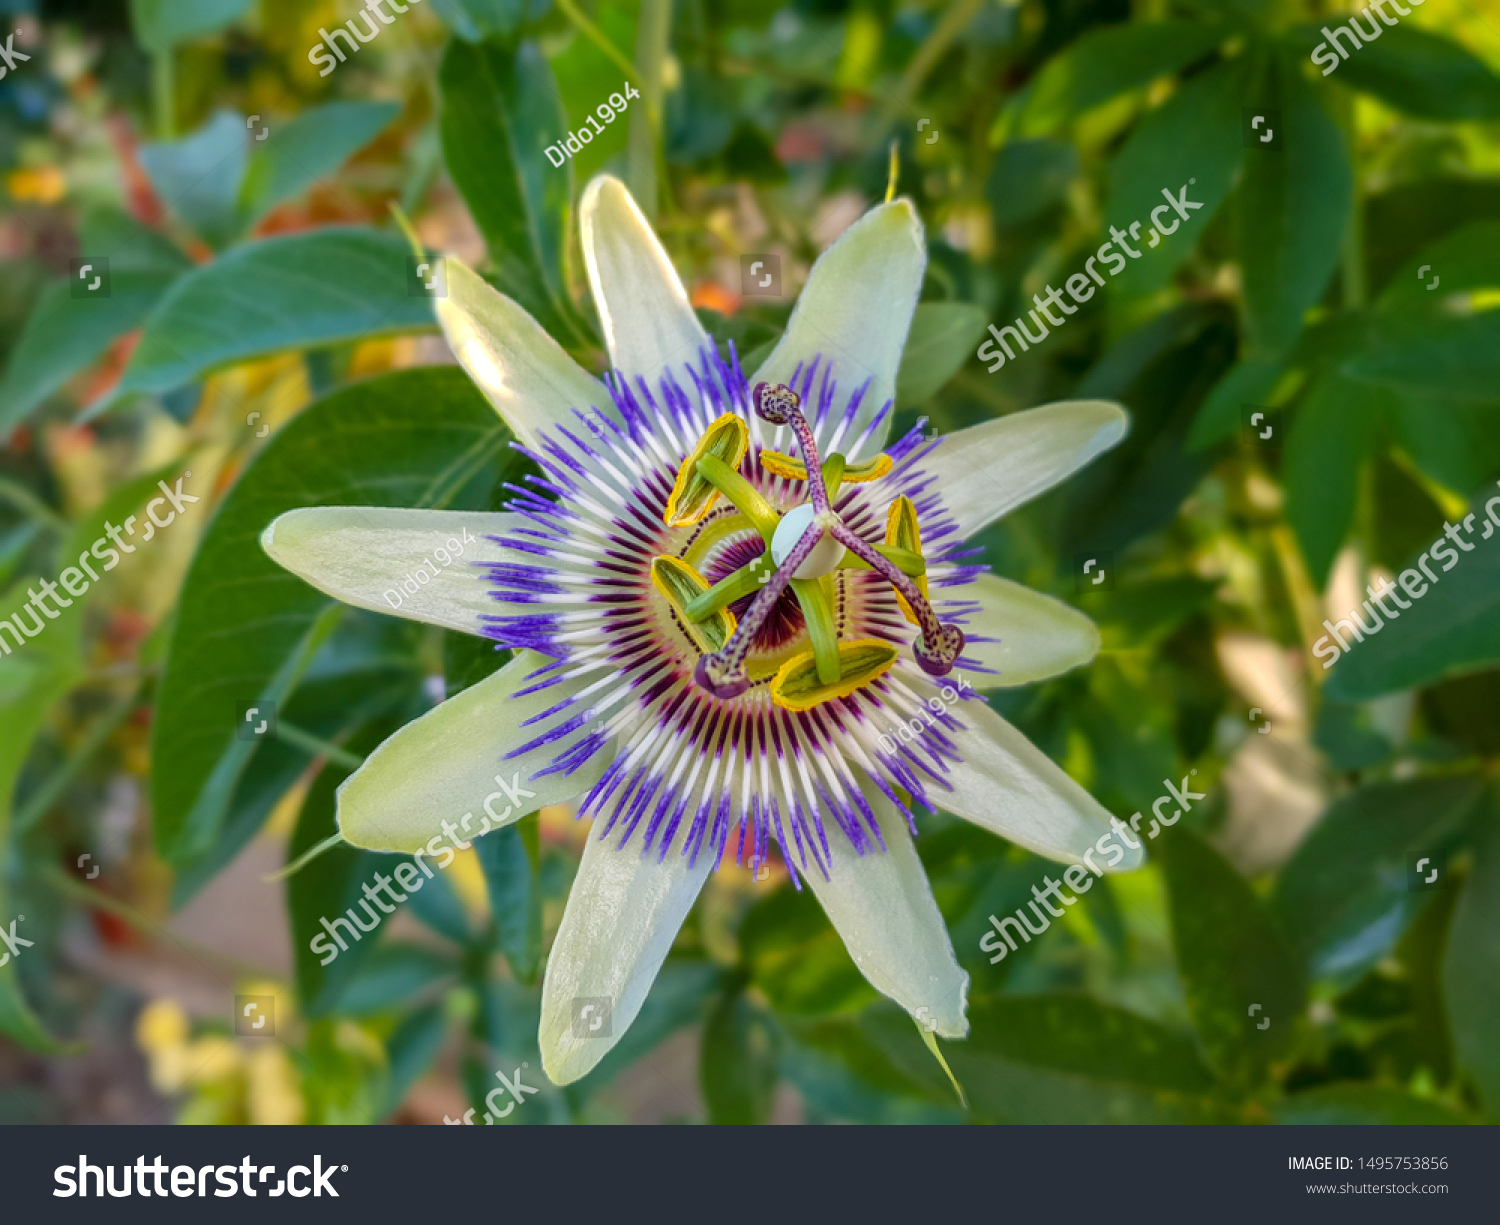 Close up passiflora. Passion Flower (Passiflora caerulea) leaf in tropical garden. Beautiful passion fruit flower or Passiflora (Passifloraceae). Passiflora is genus of 550 species. Blue passion fruit